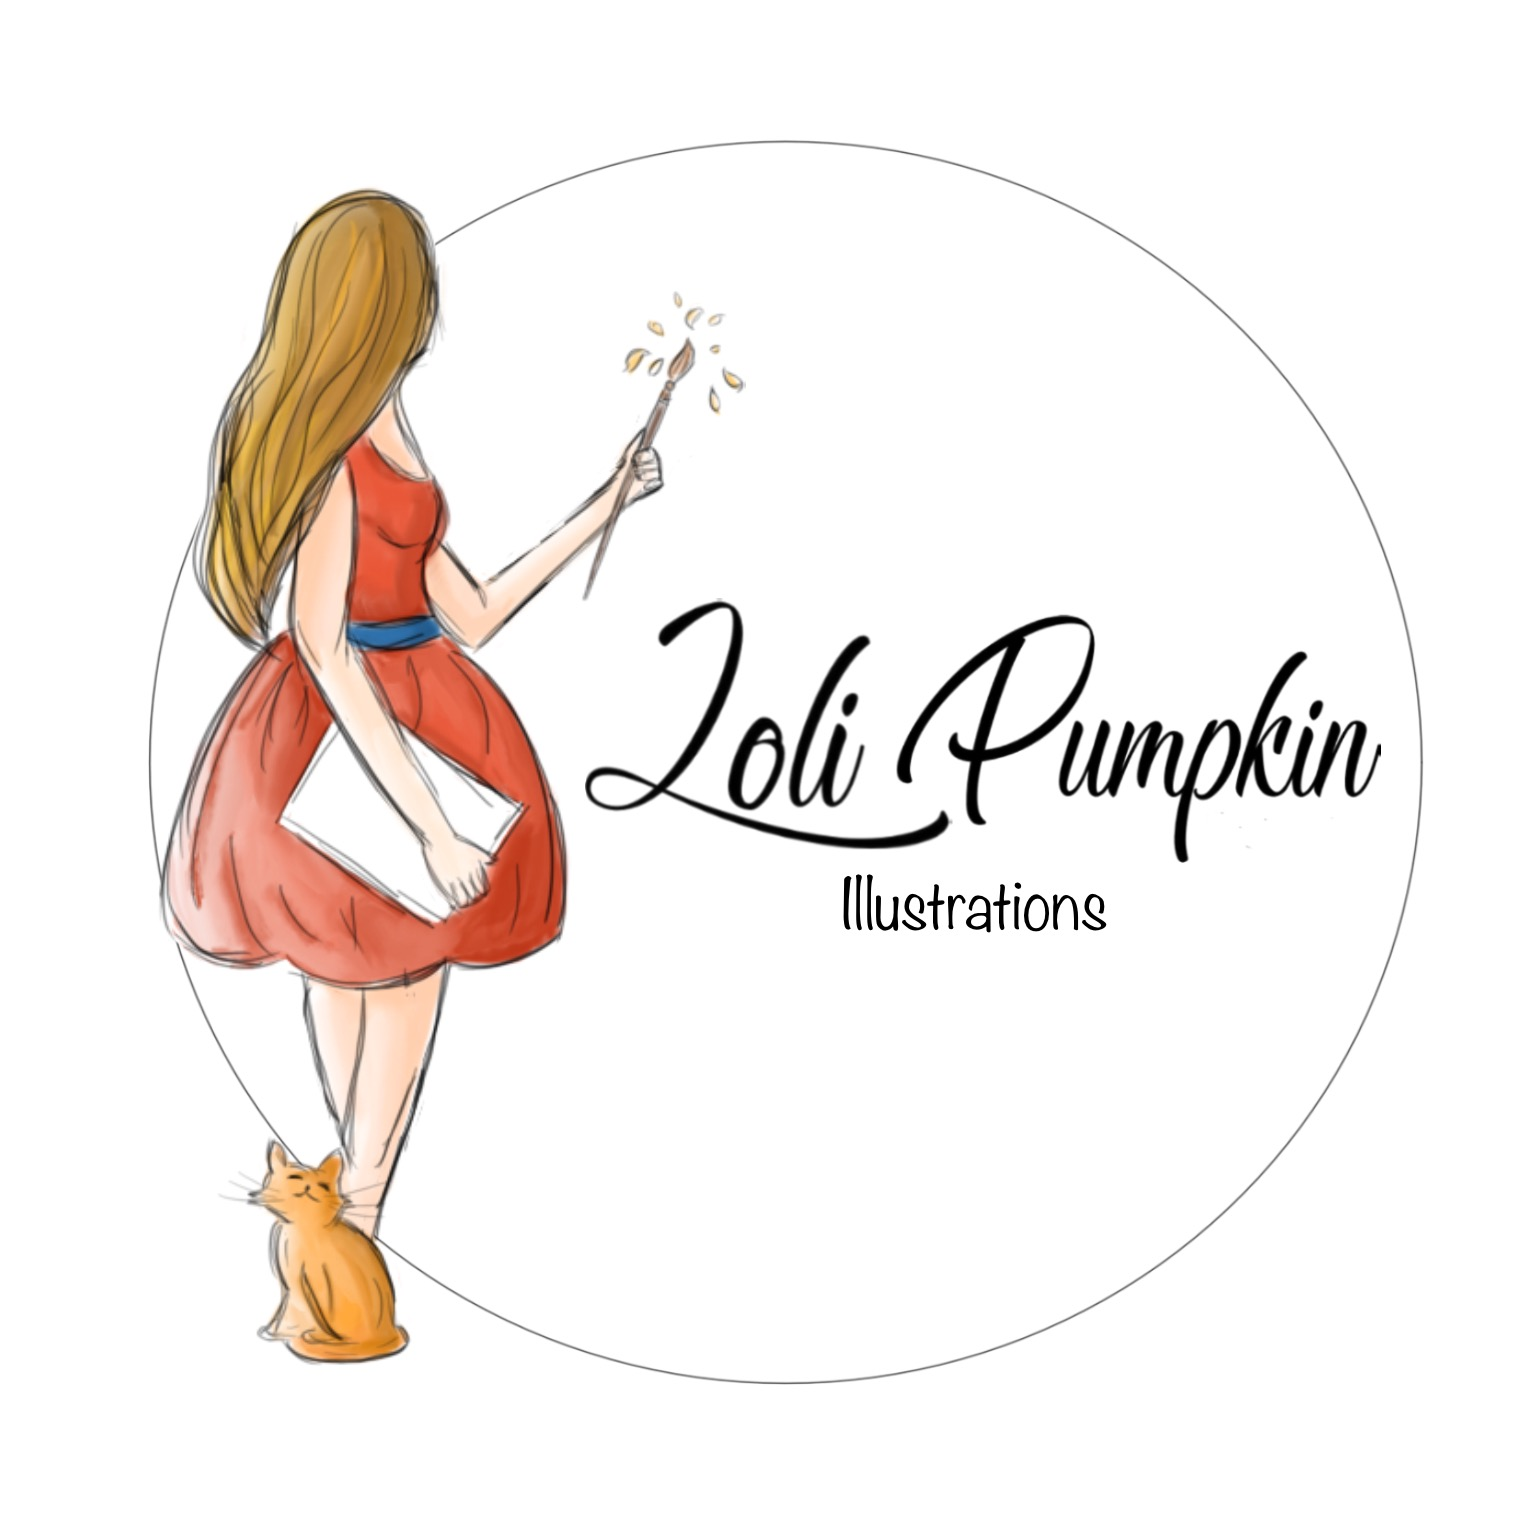 Loli Pumpkin illustrations